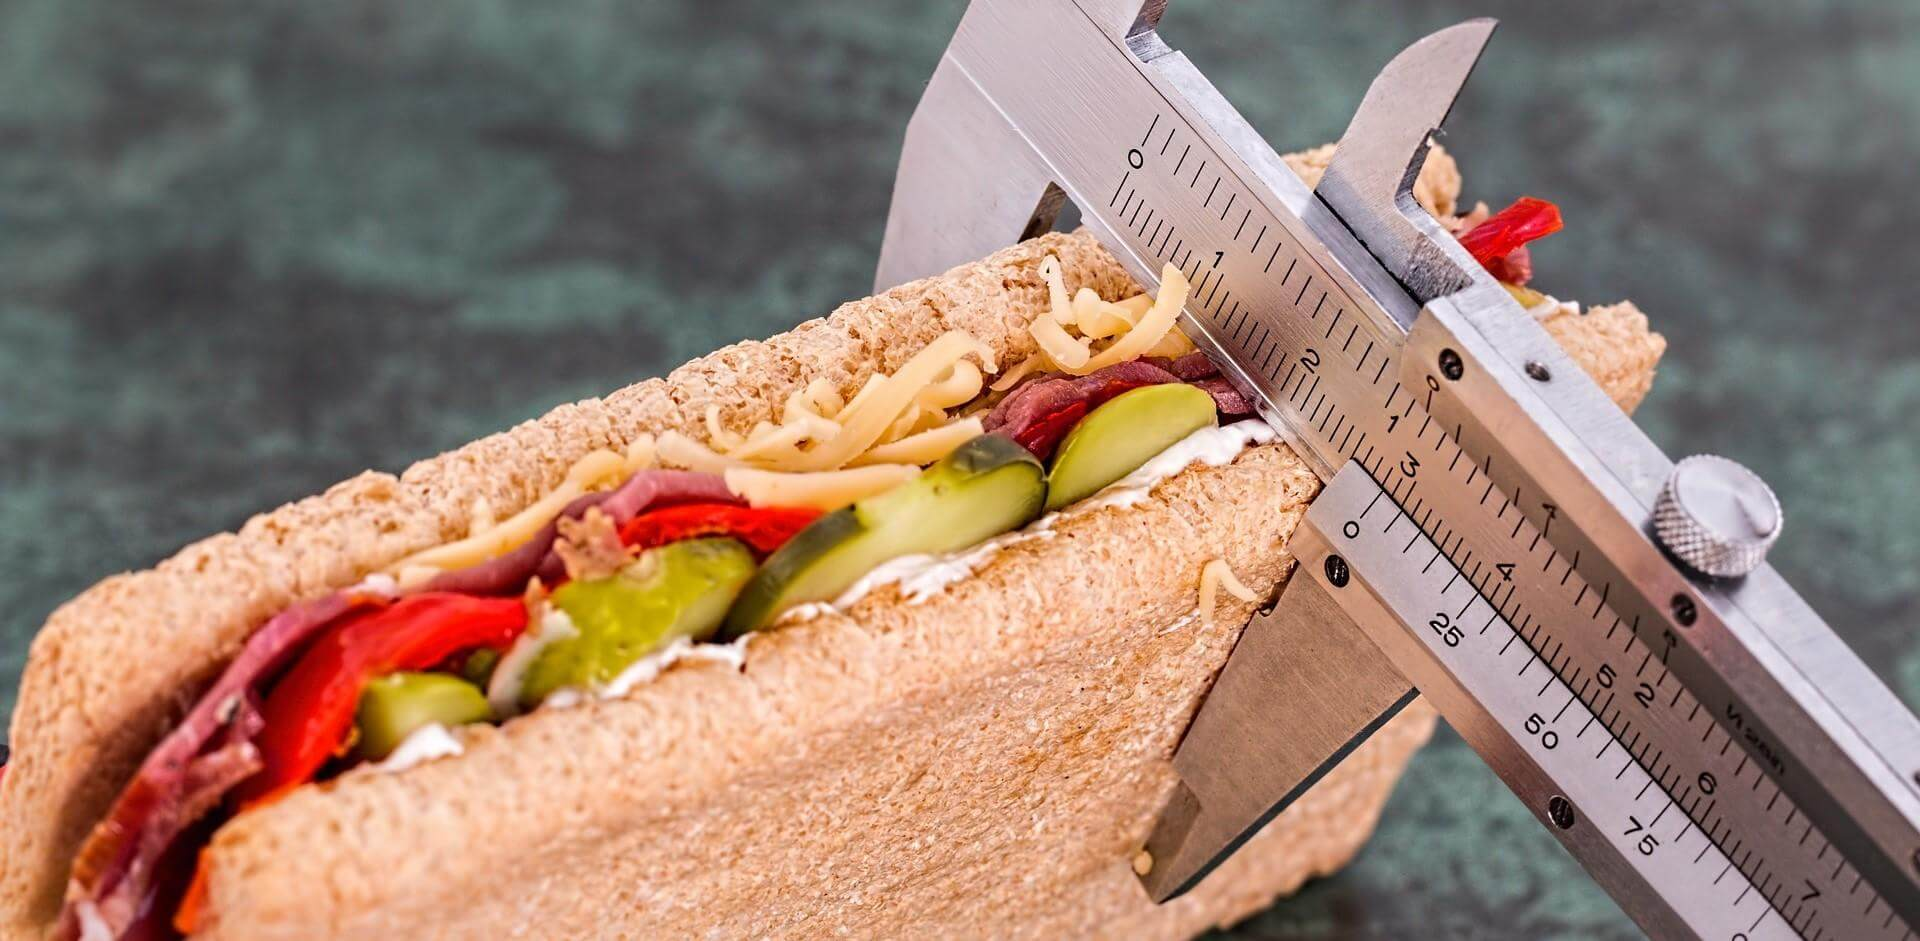 tool measuring the thickness of a sandwich